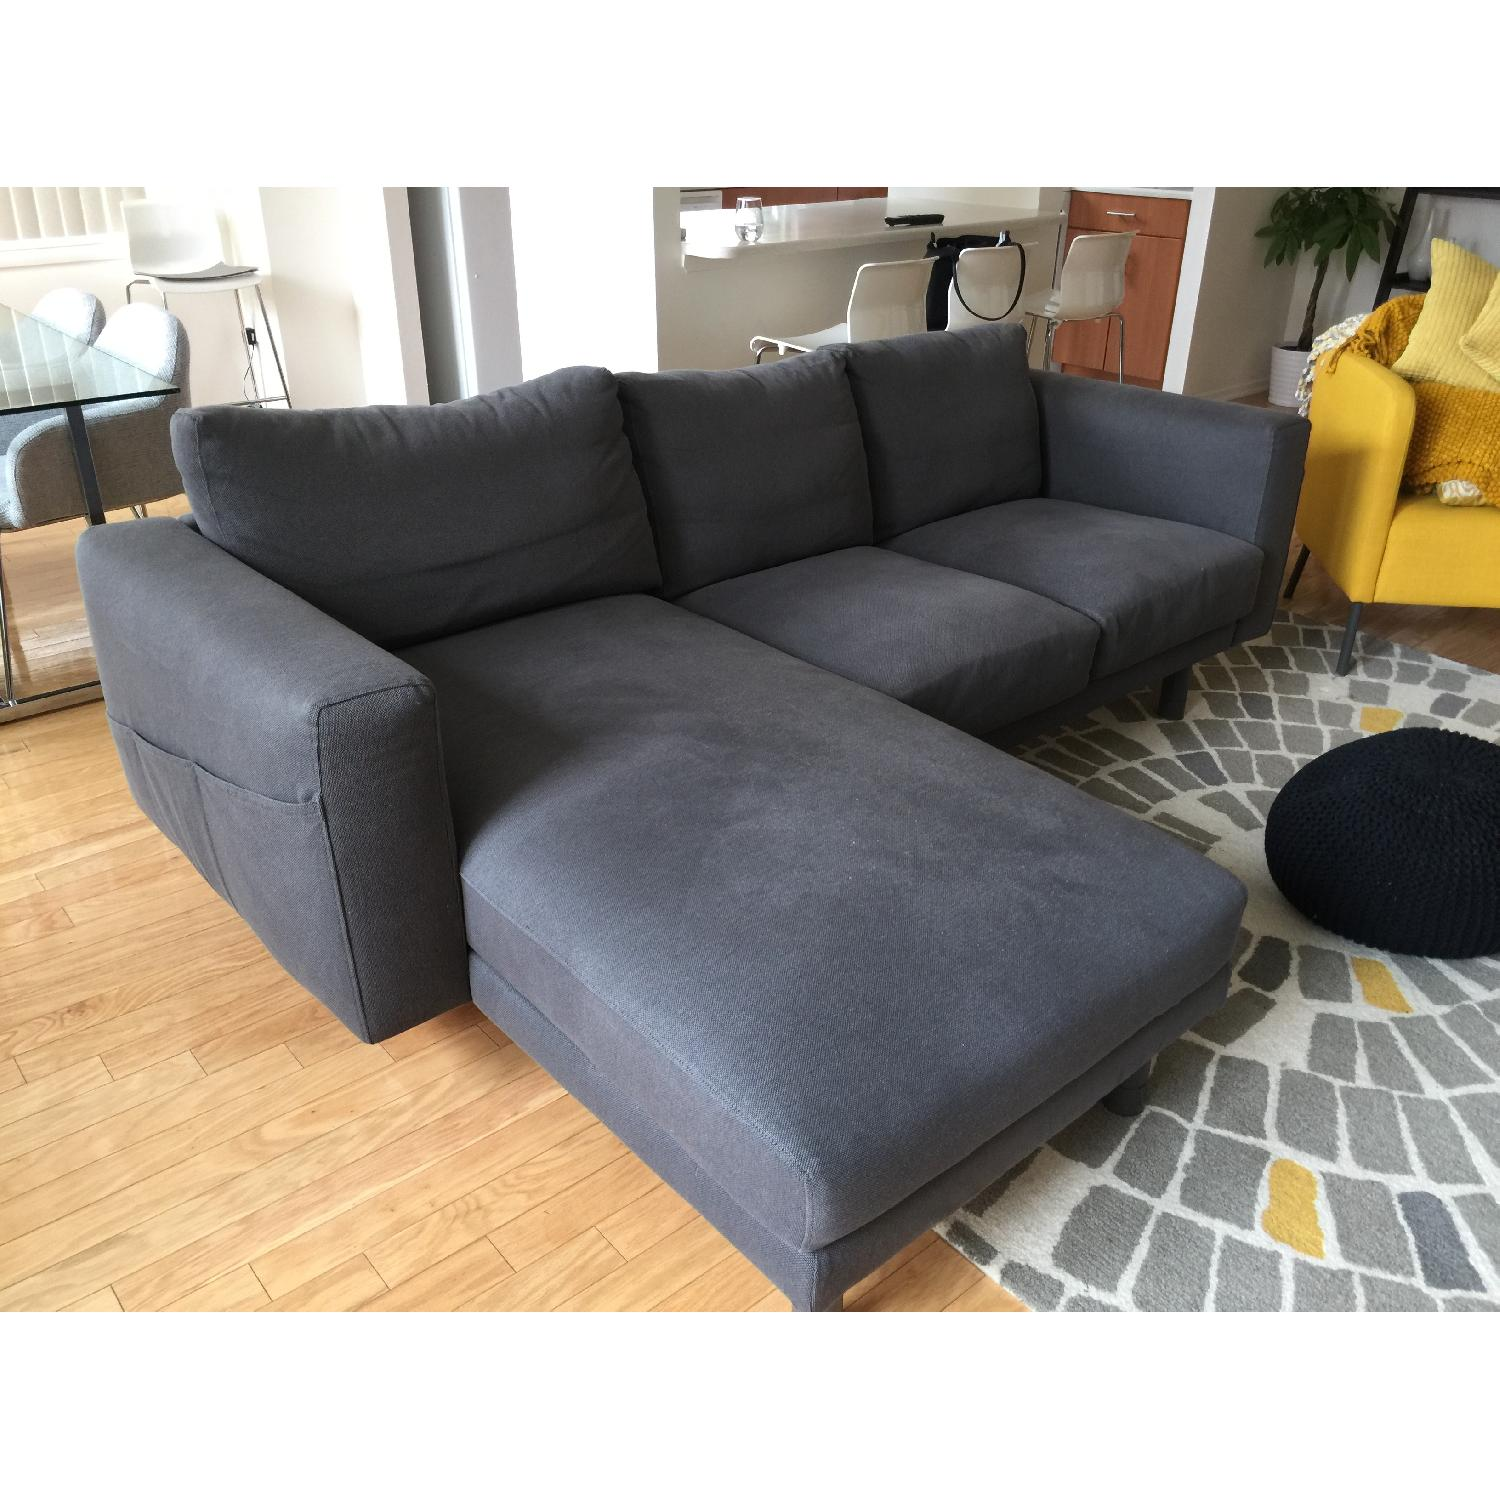 Ikea Sectional Couch - image-3